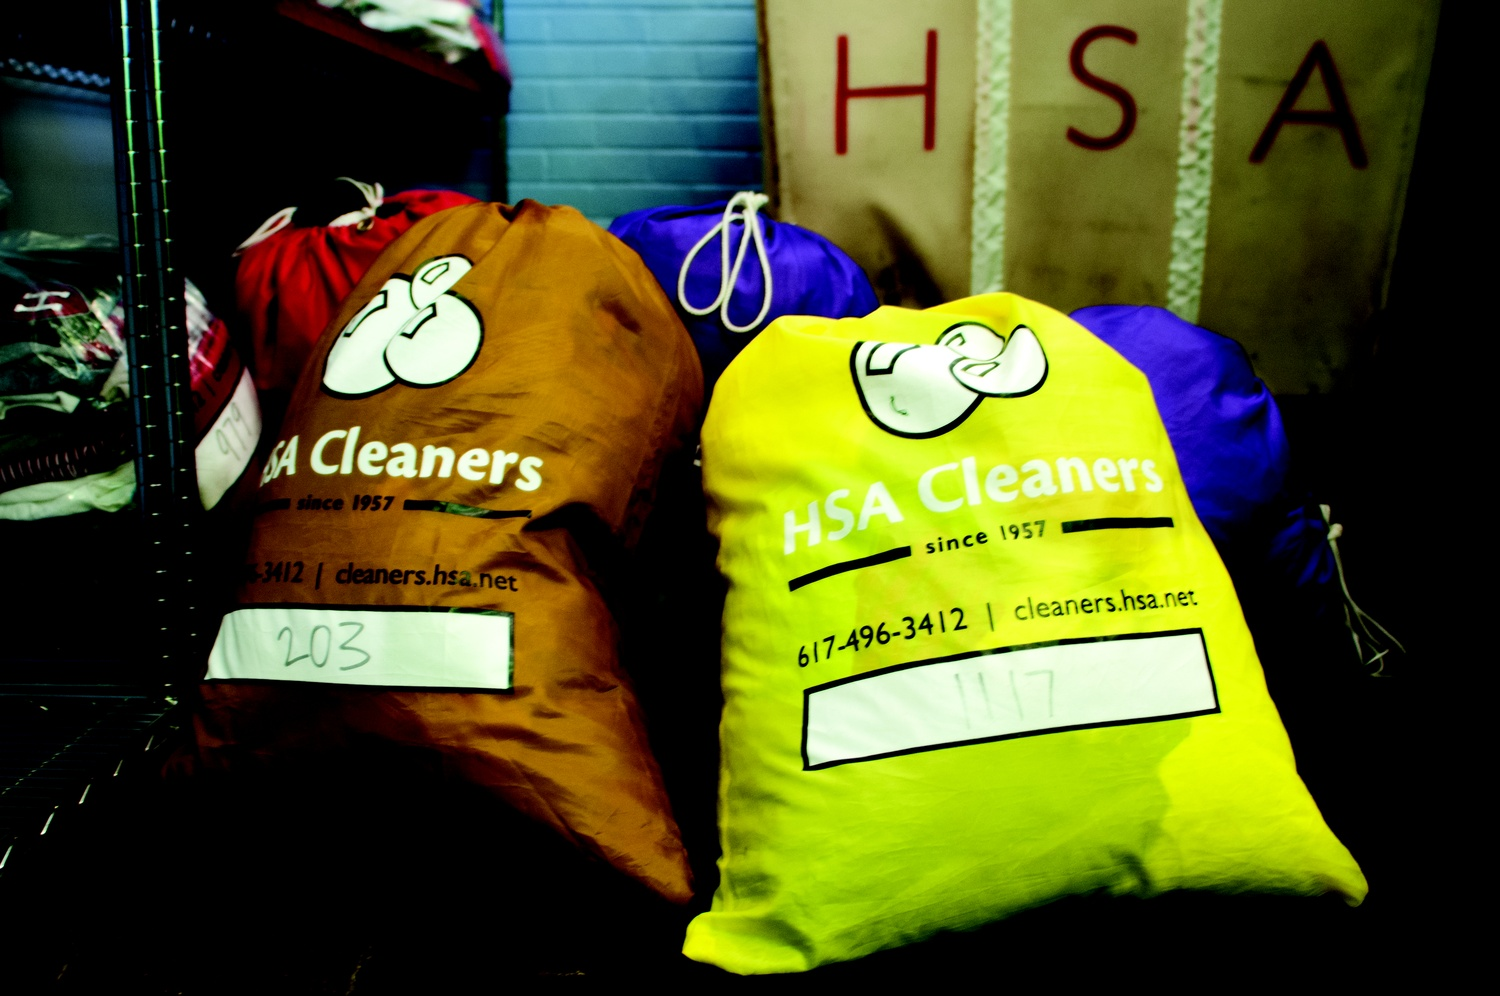 Year in Review - Diversity: HSA Cleaners